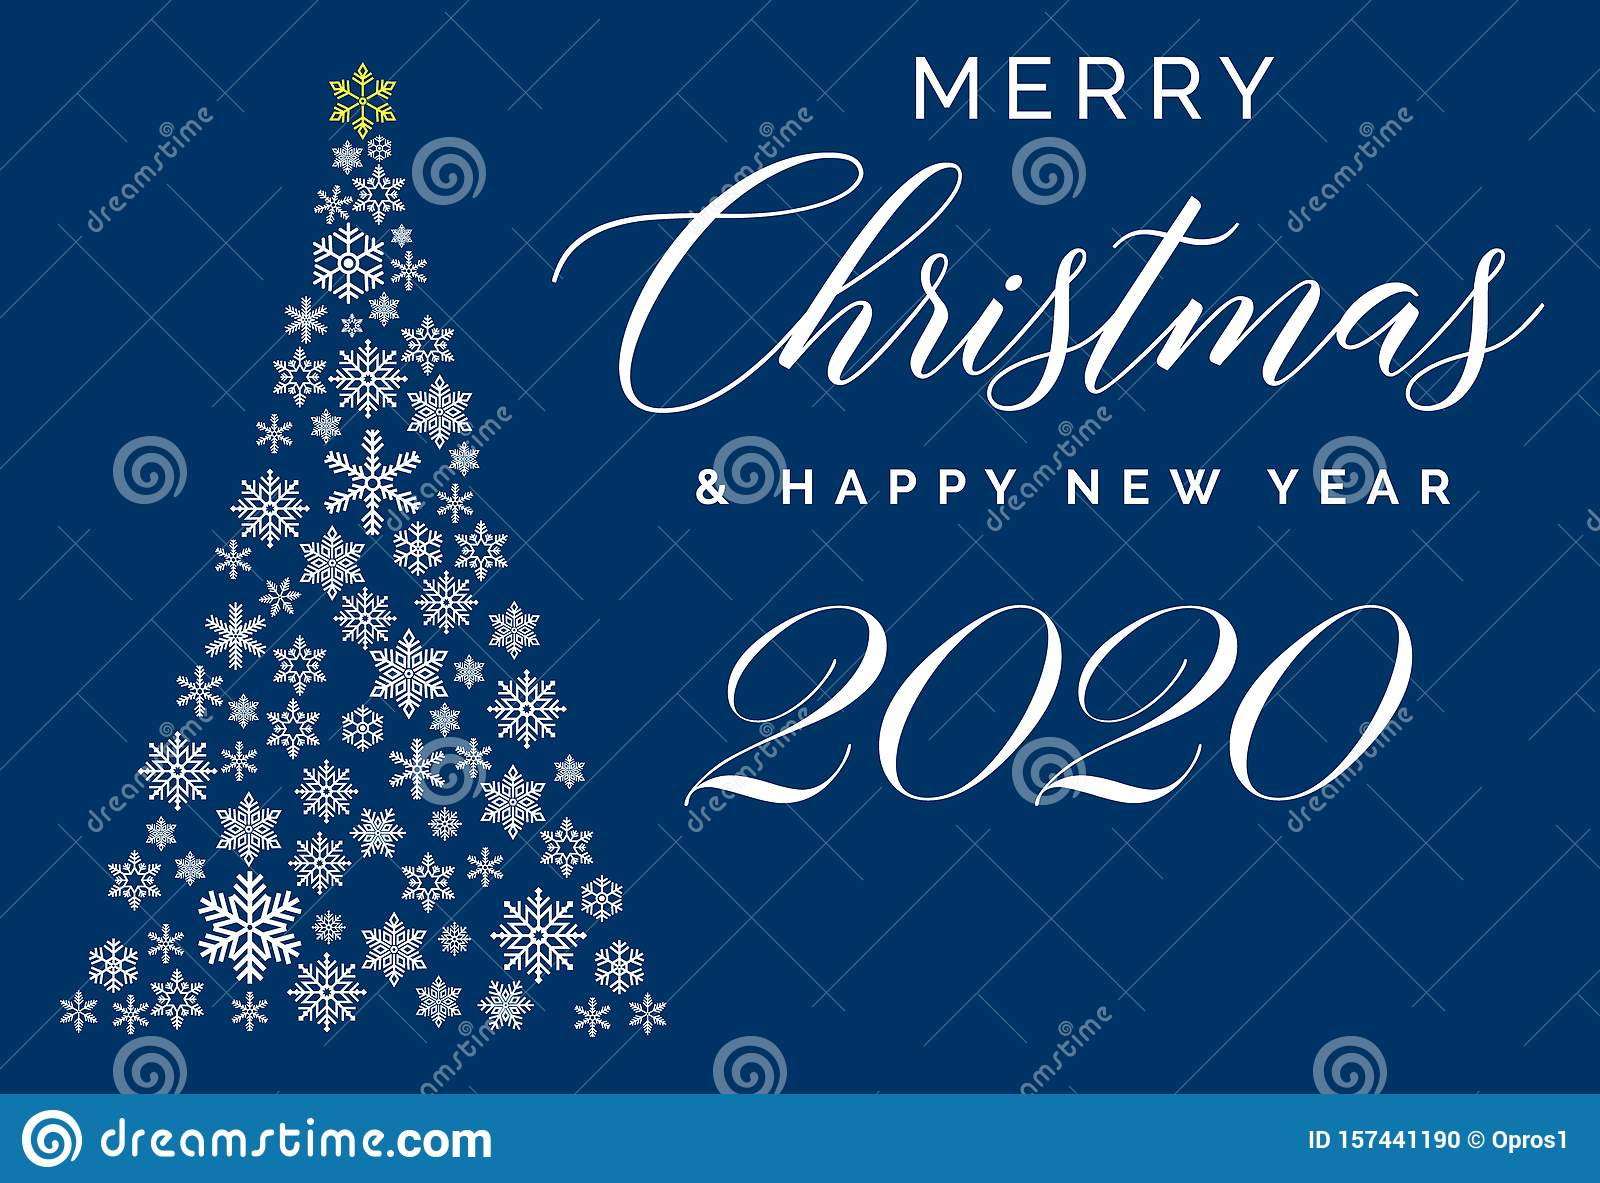 Merry Christmas And Happy New Year 2020 Lettering Template Greeting Card Or Invitation Winter Holidays Related Typograph Stock Vector Illustration Of Holiday Lettering 157441190